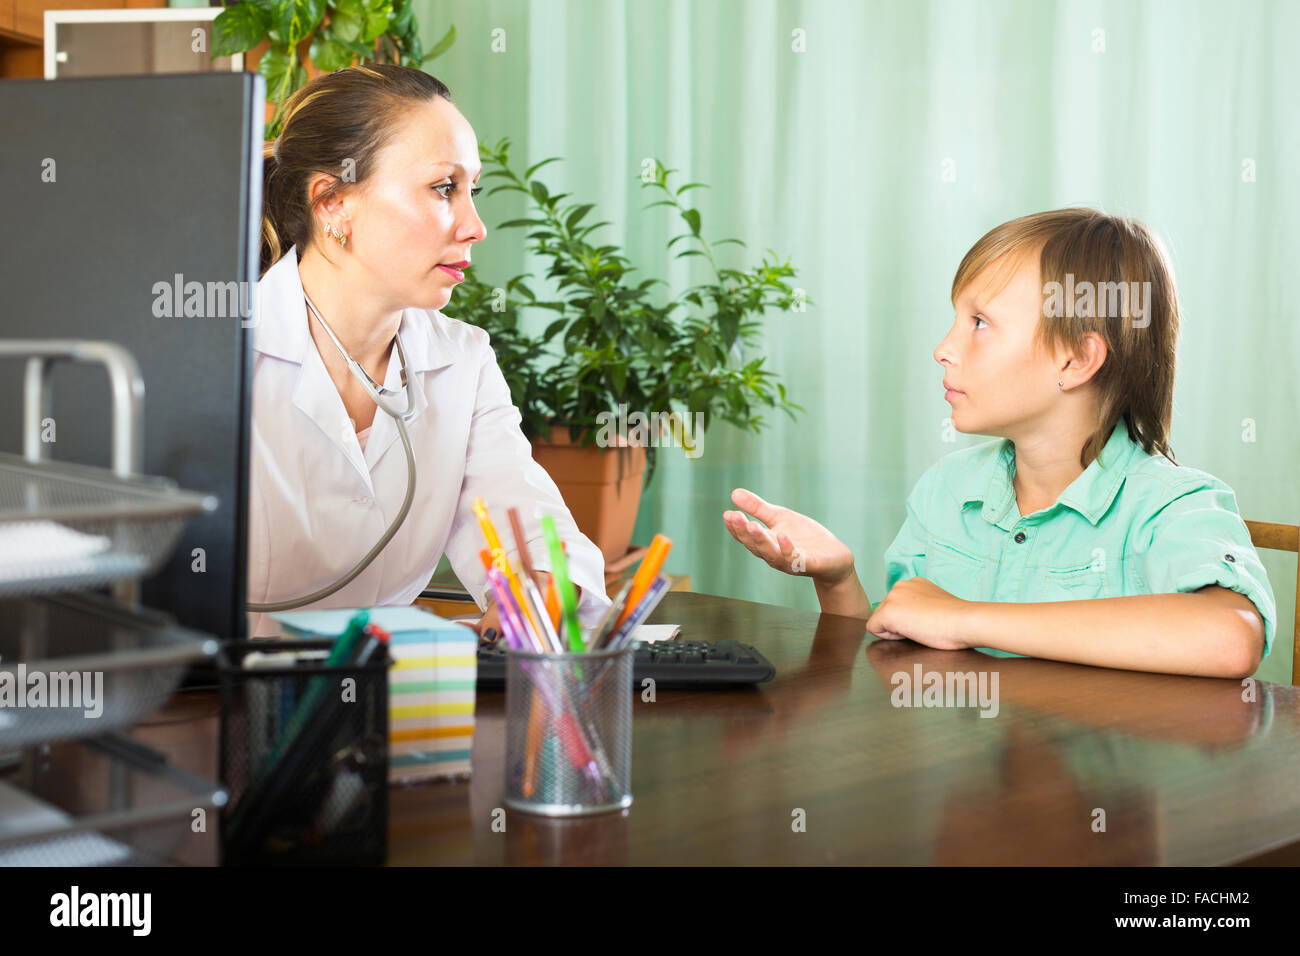 Female doctor at the table listening to complaints boy patient - Stock Image